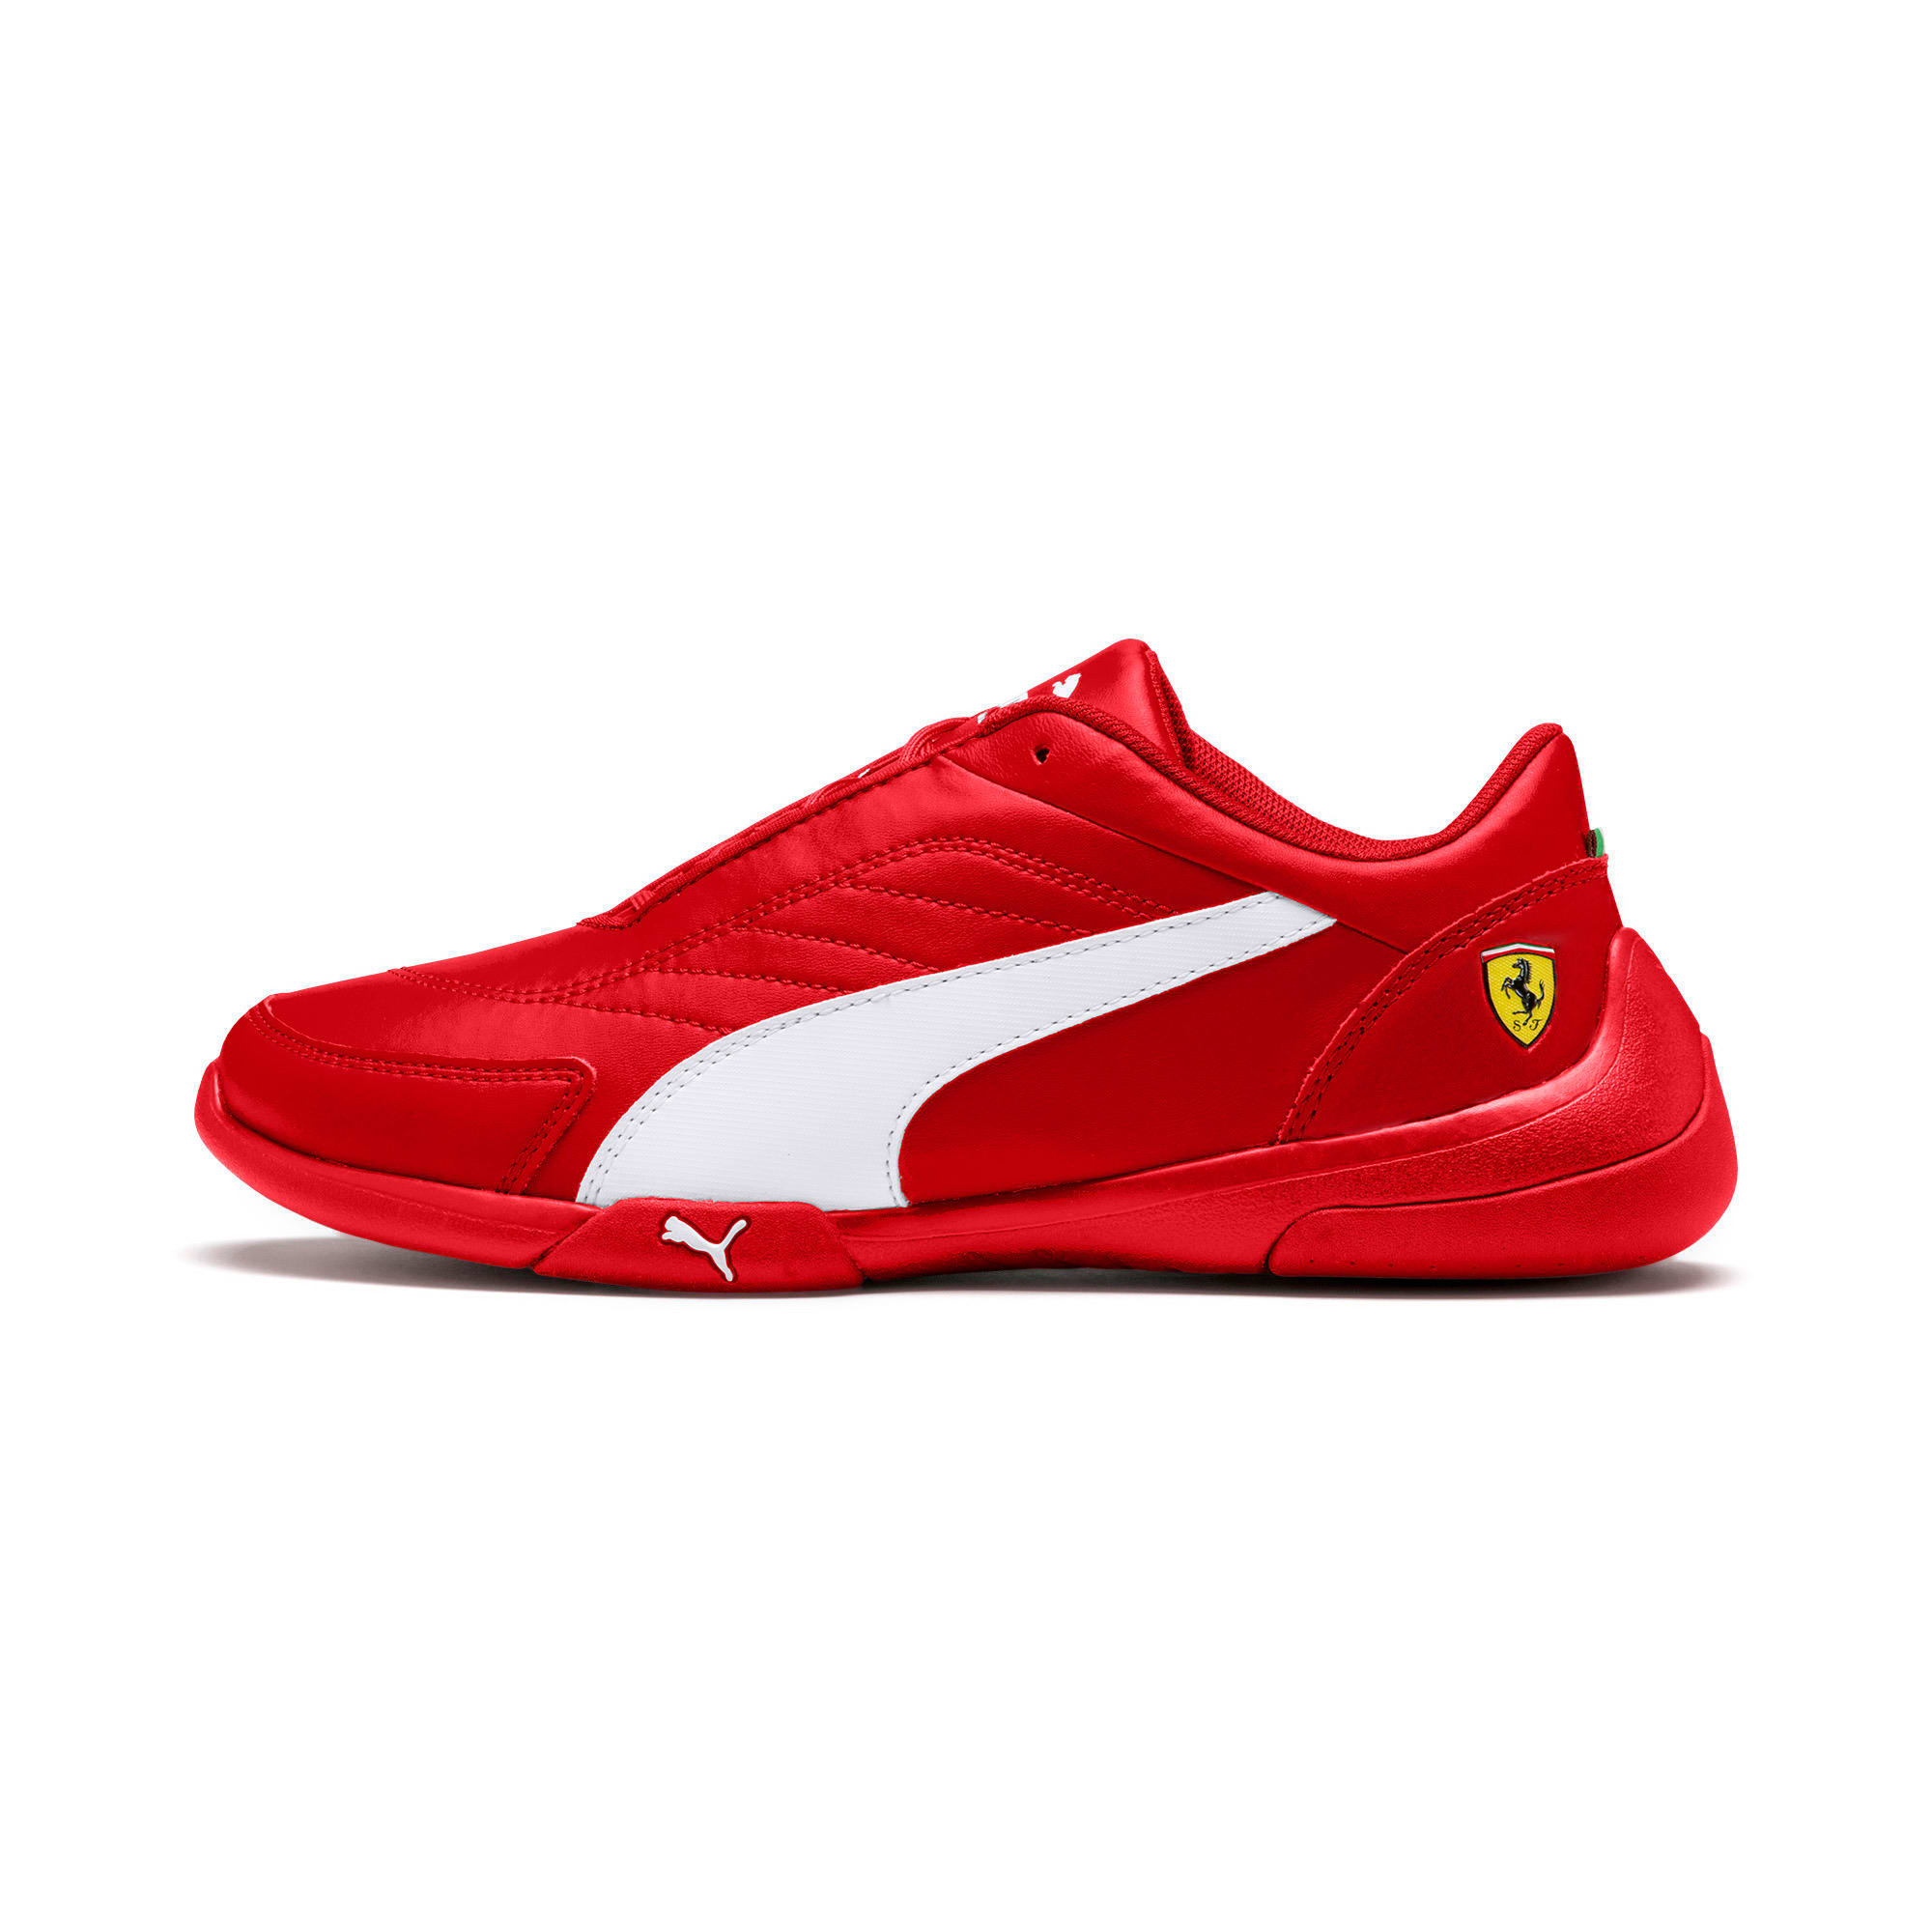 Ferrari Kart Cat III Youth Sneaker, Rosso Corsa-Wht-Rosso Corsa, large